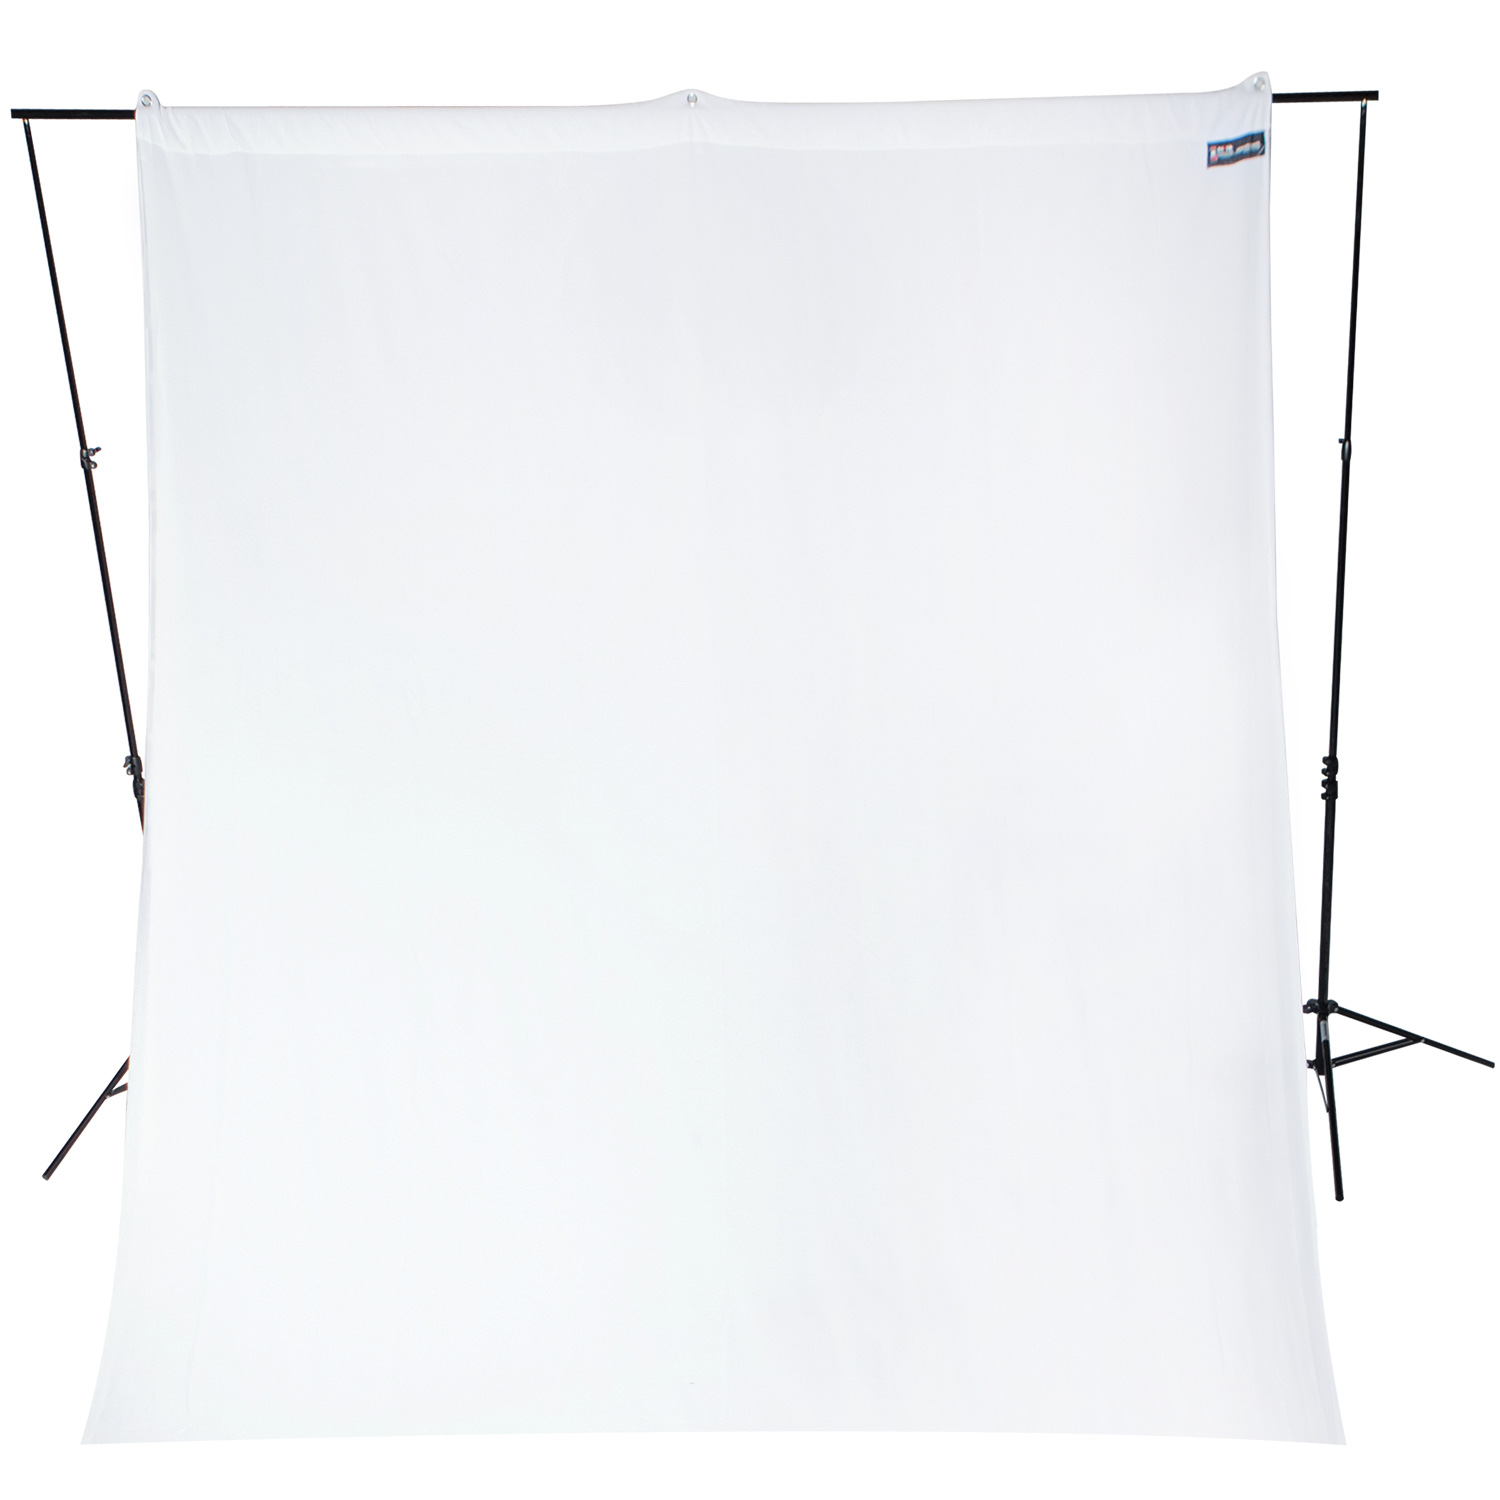 9' x 10' White Background